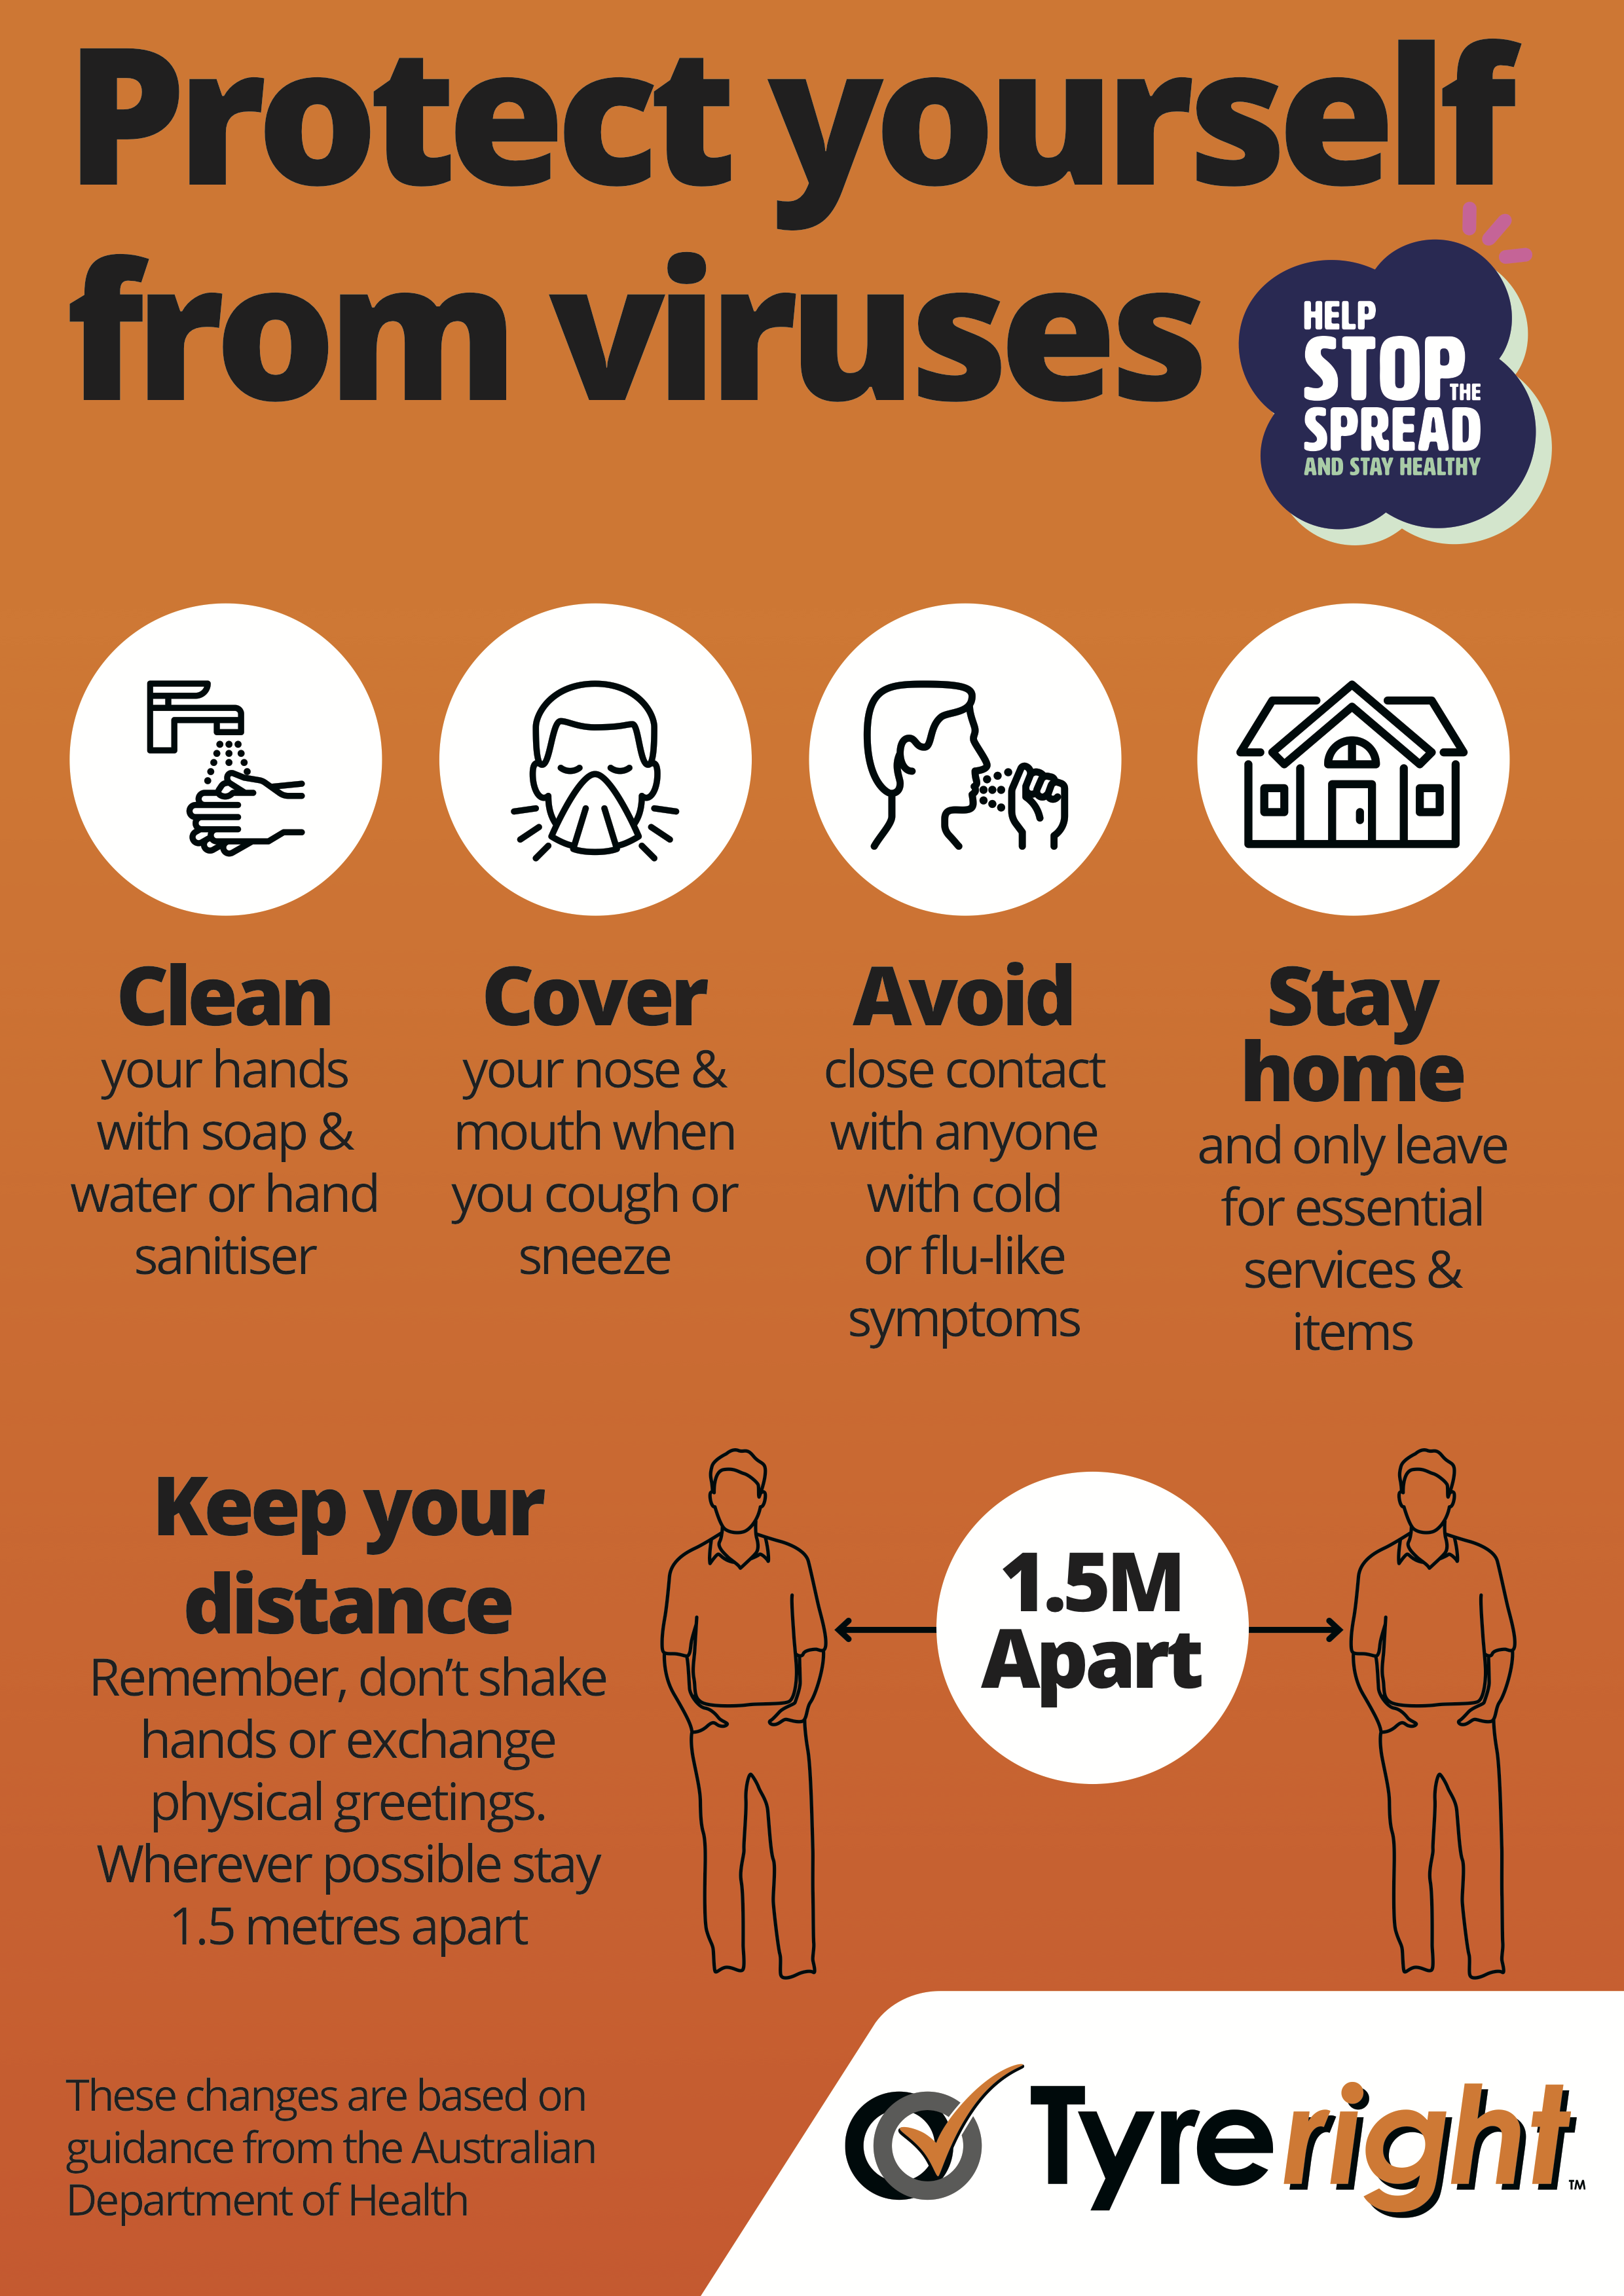 Protect yourself from viruses and maintain good hygiene